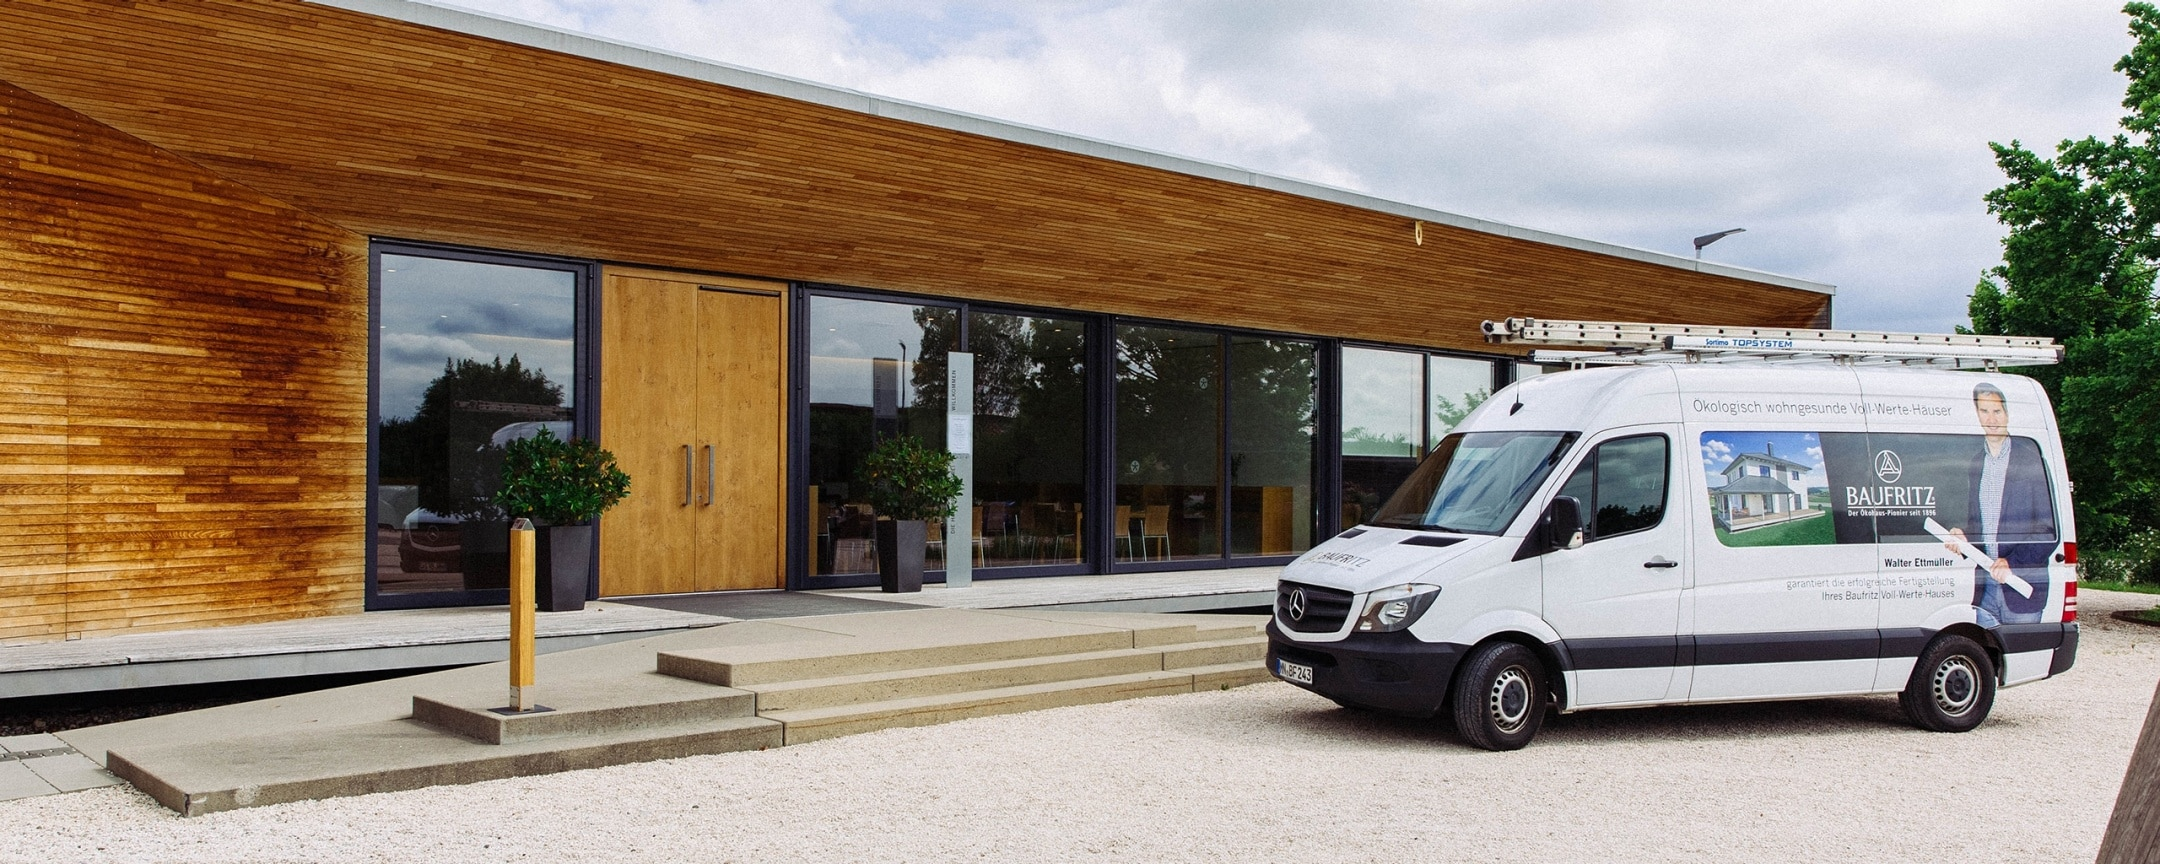 A white Mercedes-Benz Sprinter is parked in front of a house with a wooden façade